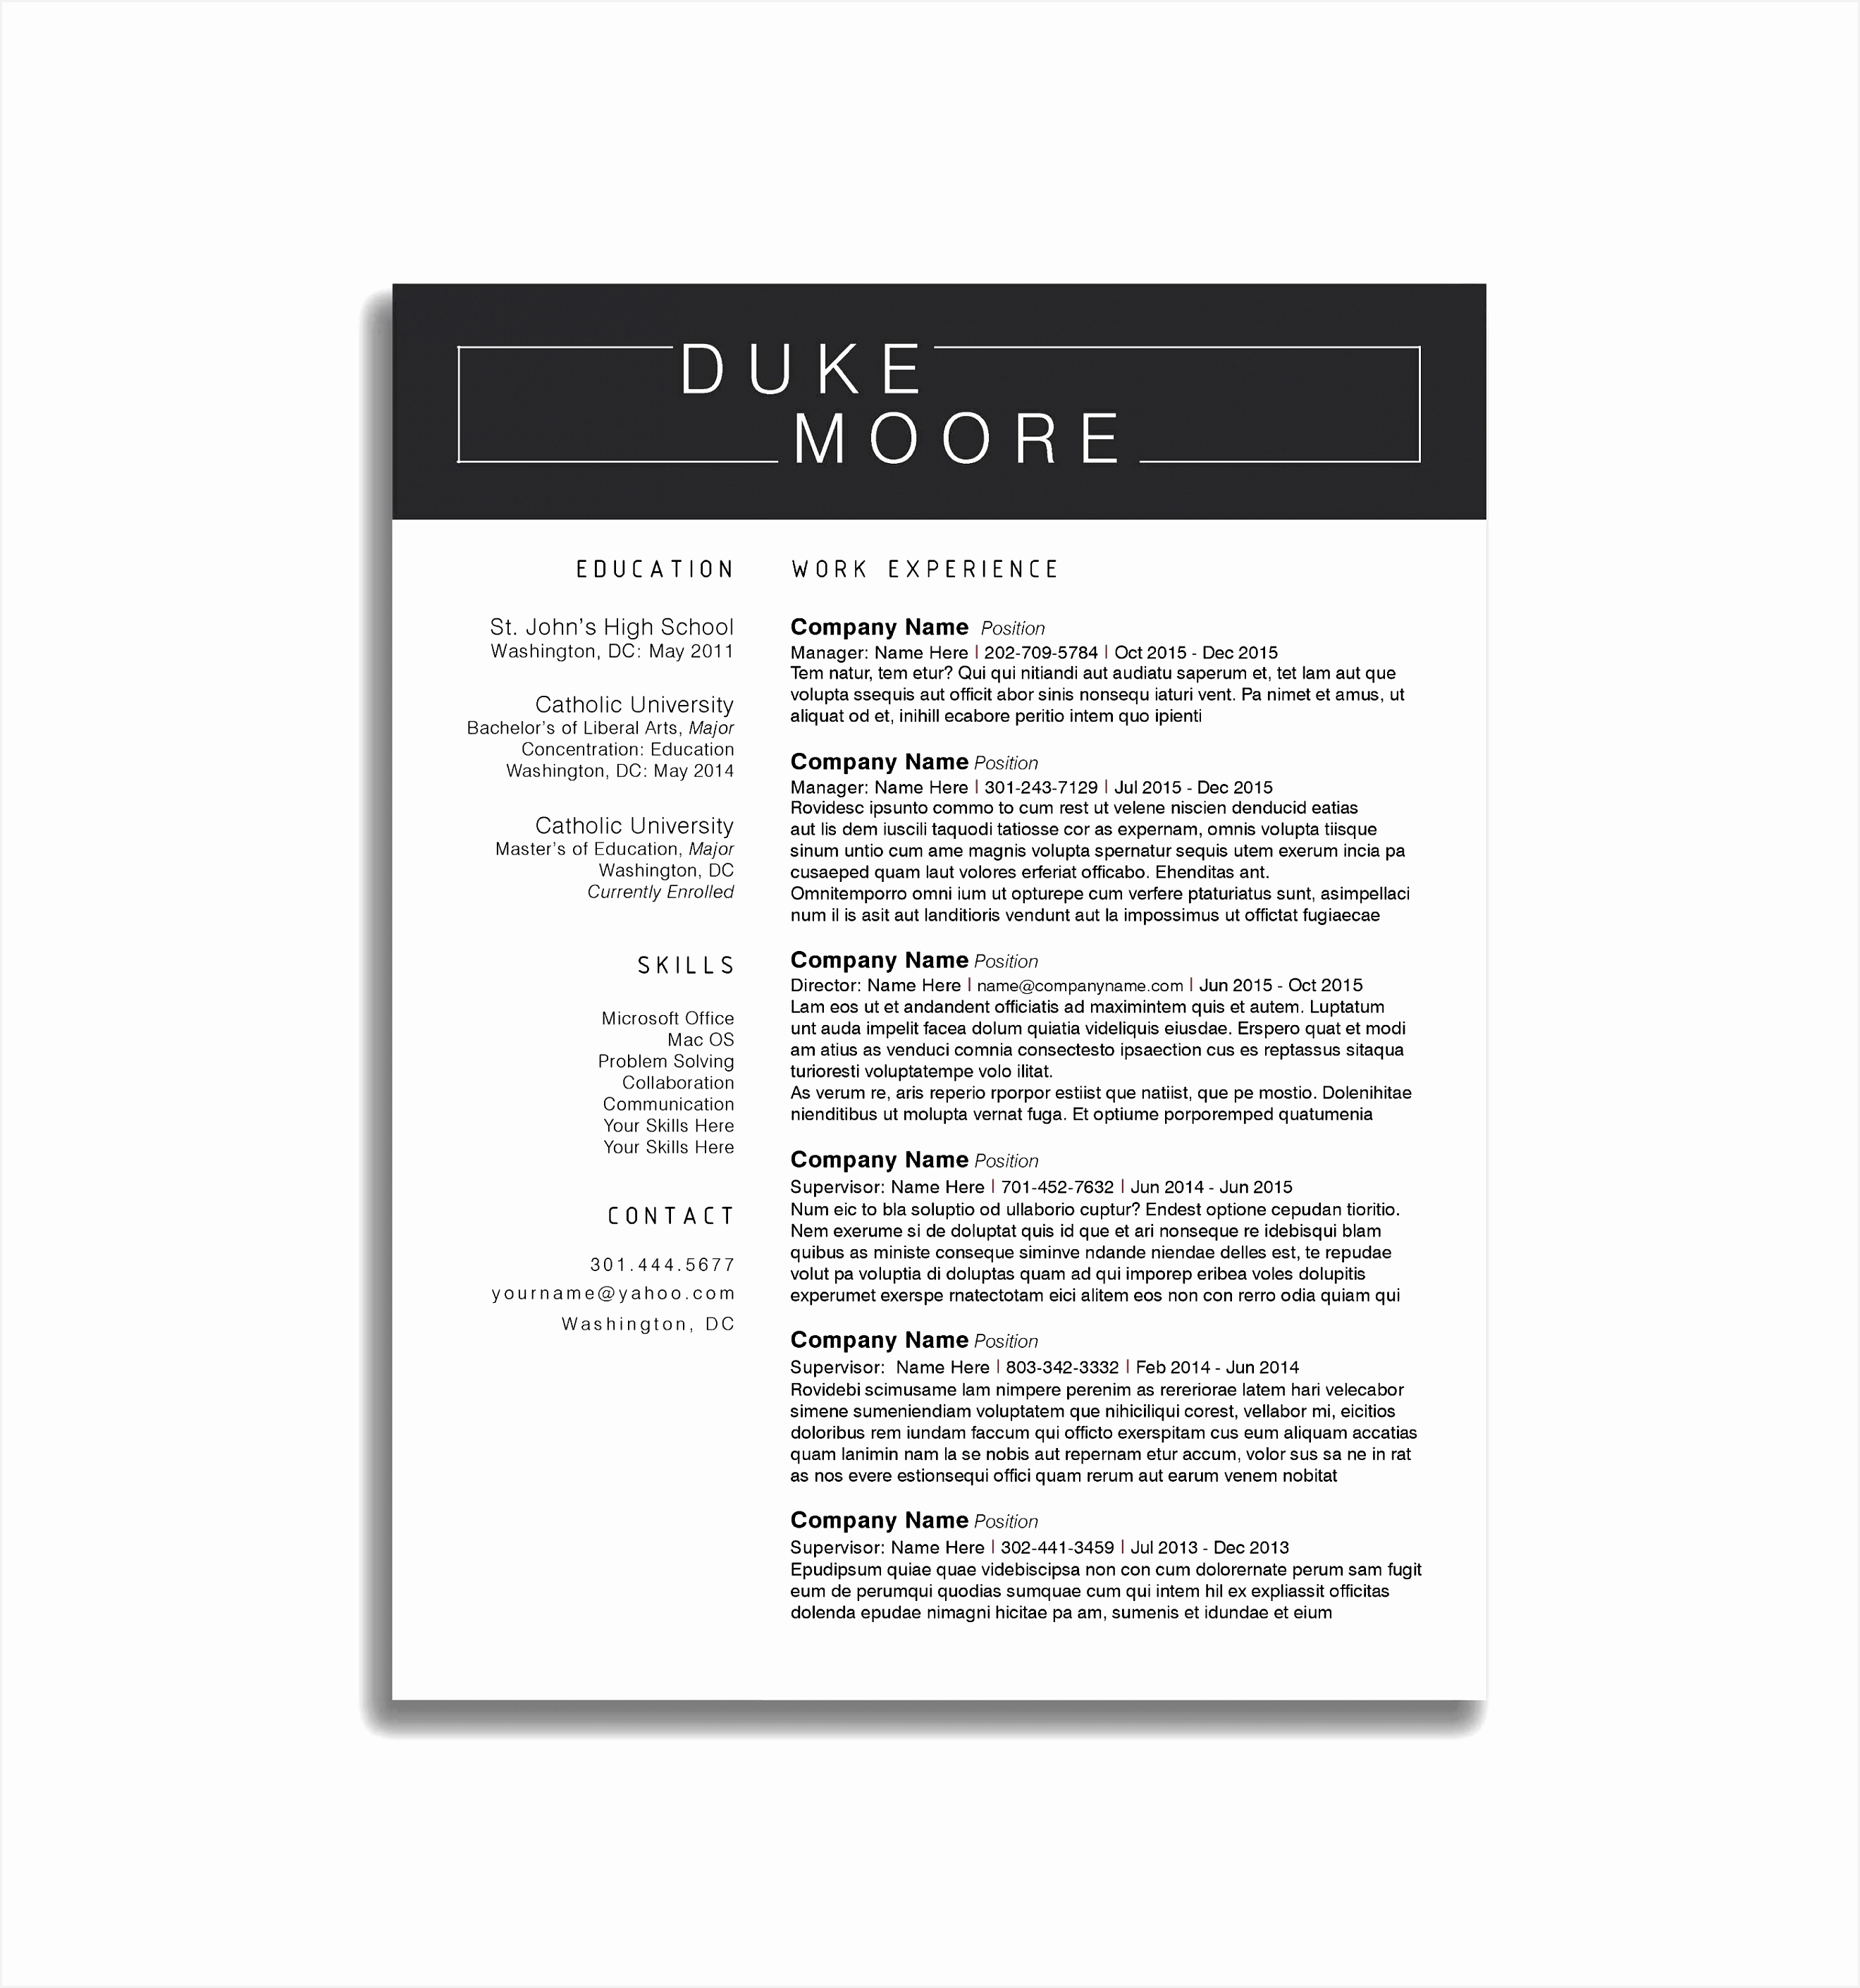 Honors and Awards Resume Examples Inspirational Awards and Acknowledgements Resume Examples – 45 Luxury Fast Food 28202639wUsvf